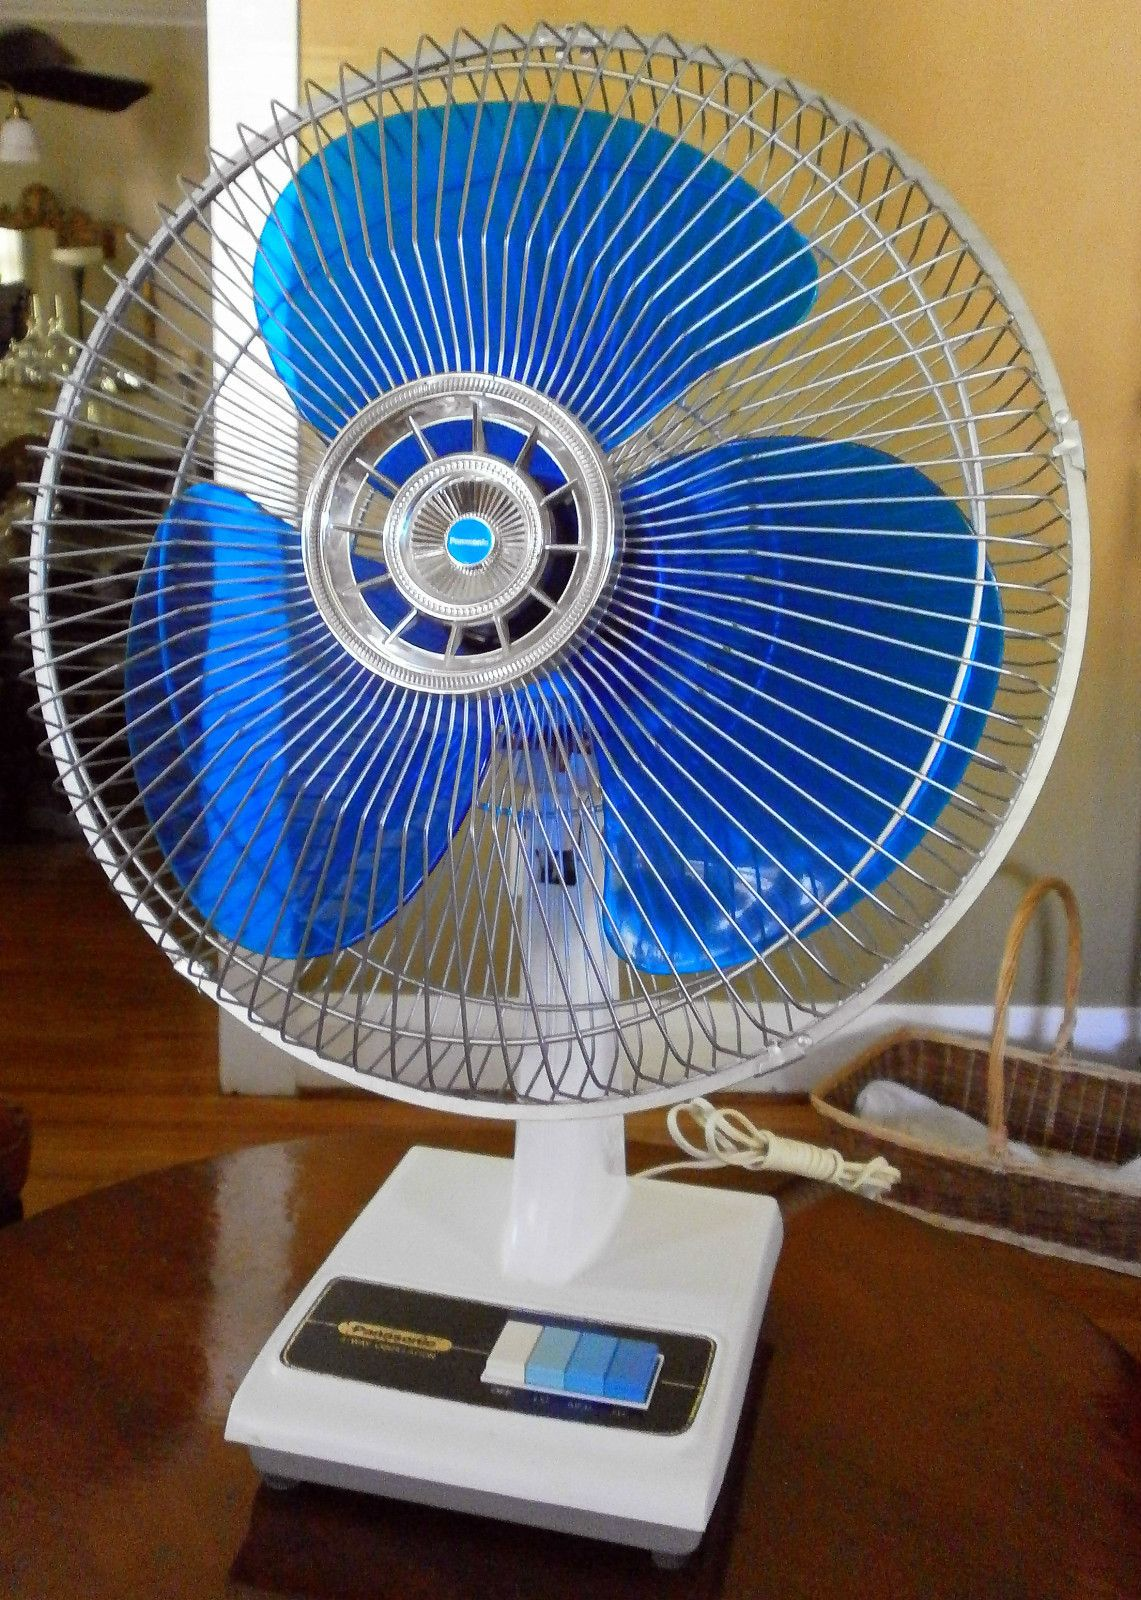 Pink With A Fan 6 Blades : S panasonic quot oscillating fan blue blades model